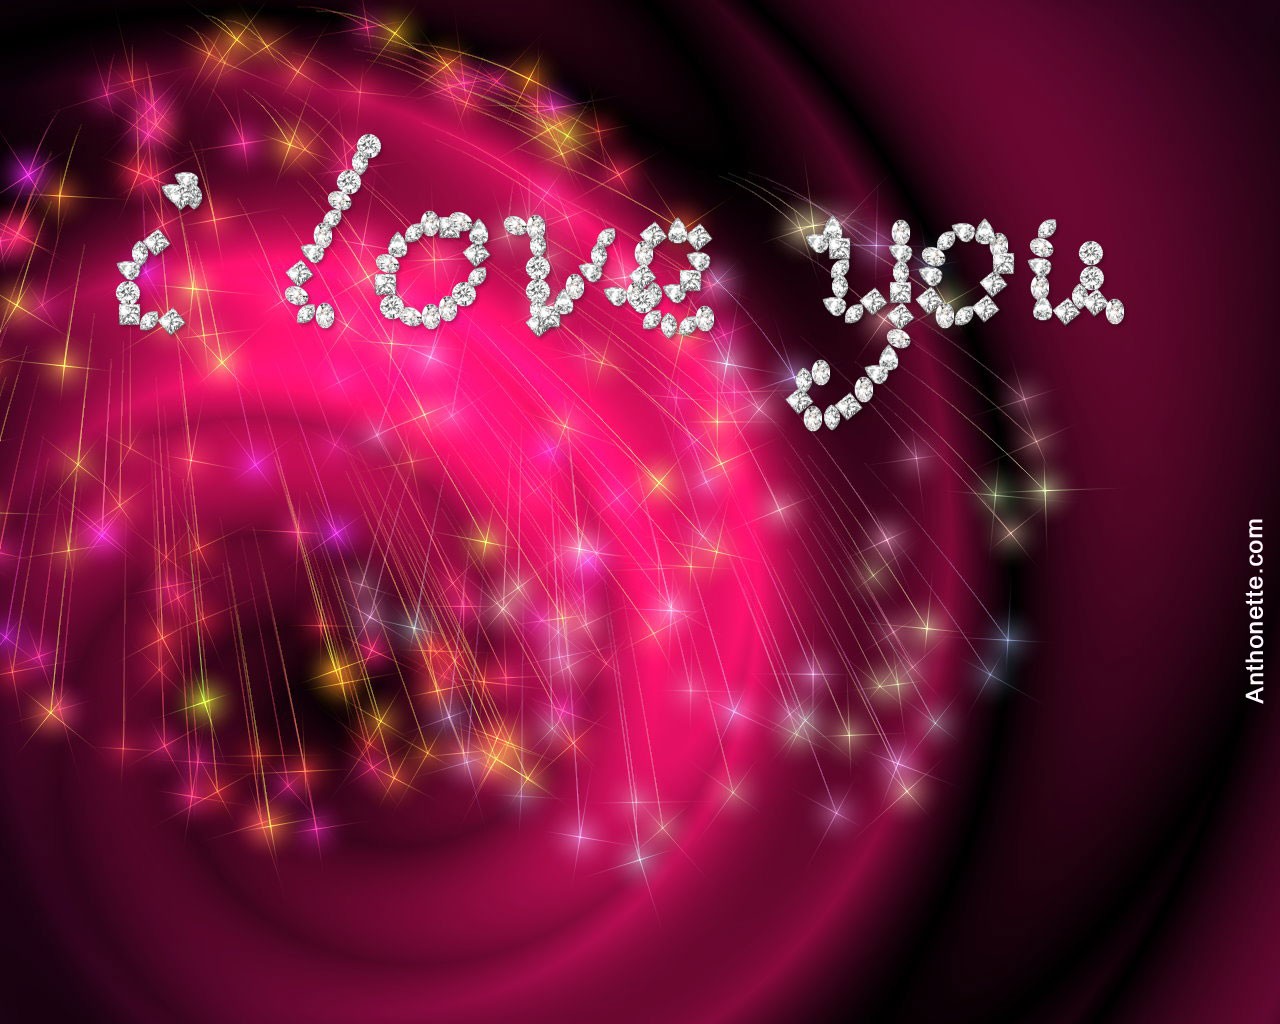 Love Msg Wallpaper In Hd : Love You Wallpapers HD Nice Wallpapers